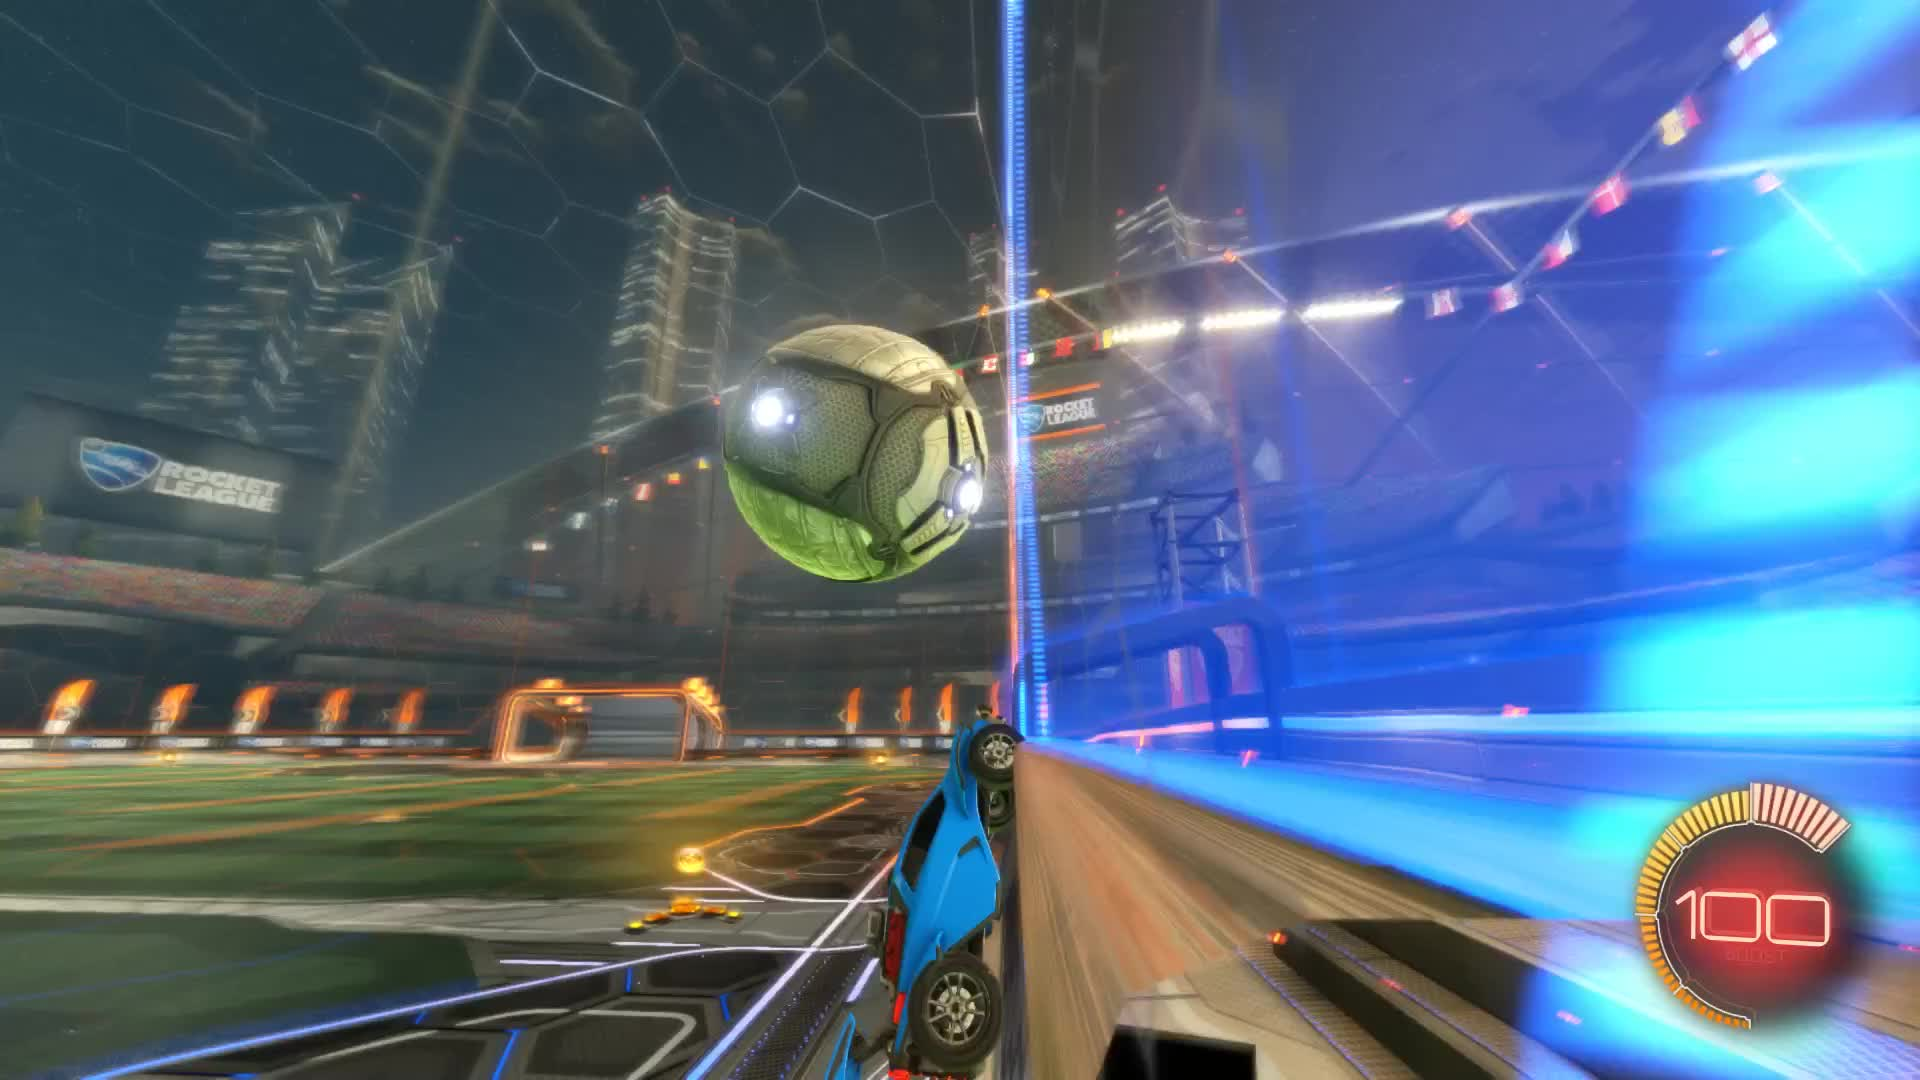 Gif Your Game, GifYourGame, Goal, Kung ^-^, Rocket League, RocketLeague, Goal 2: Kung ^-^ GIFs